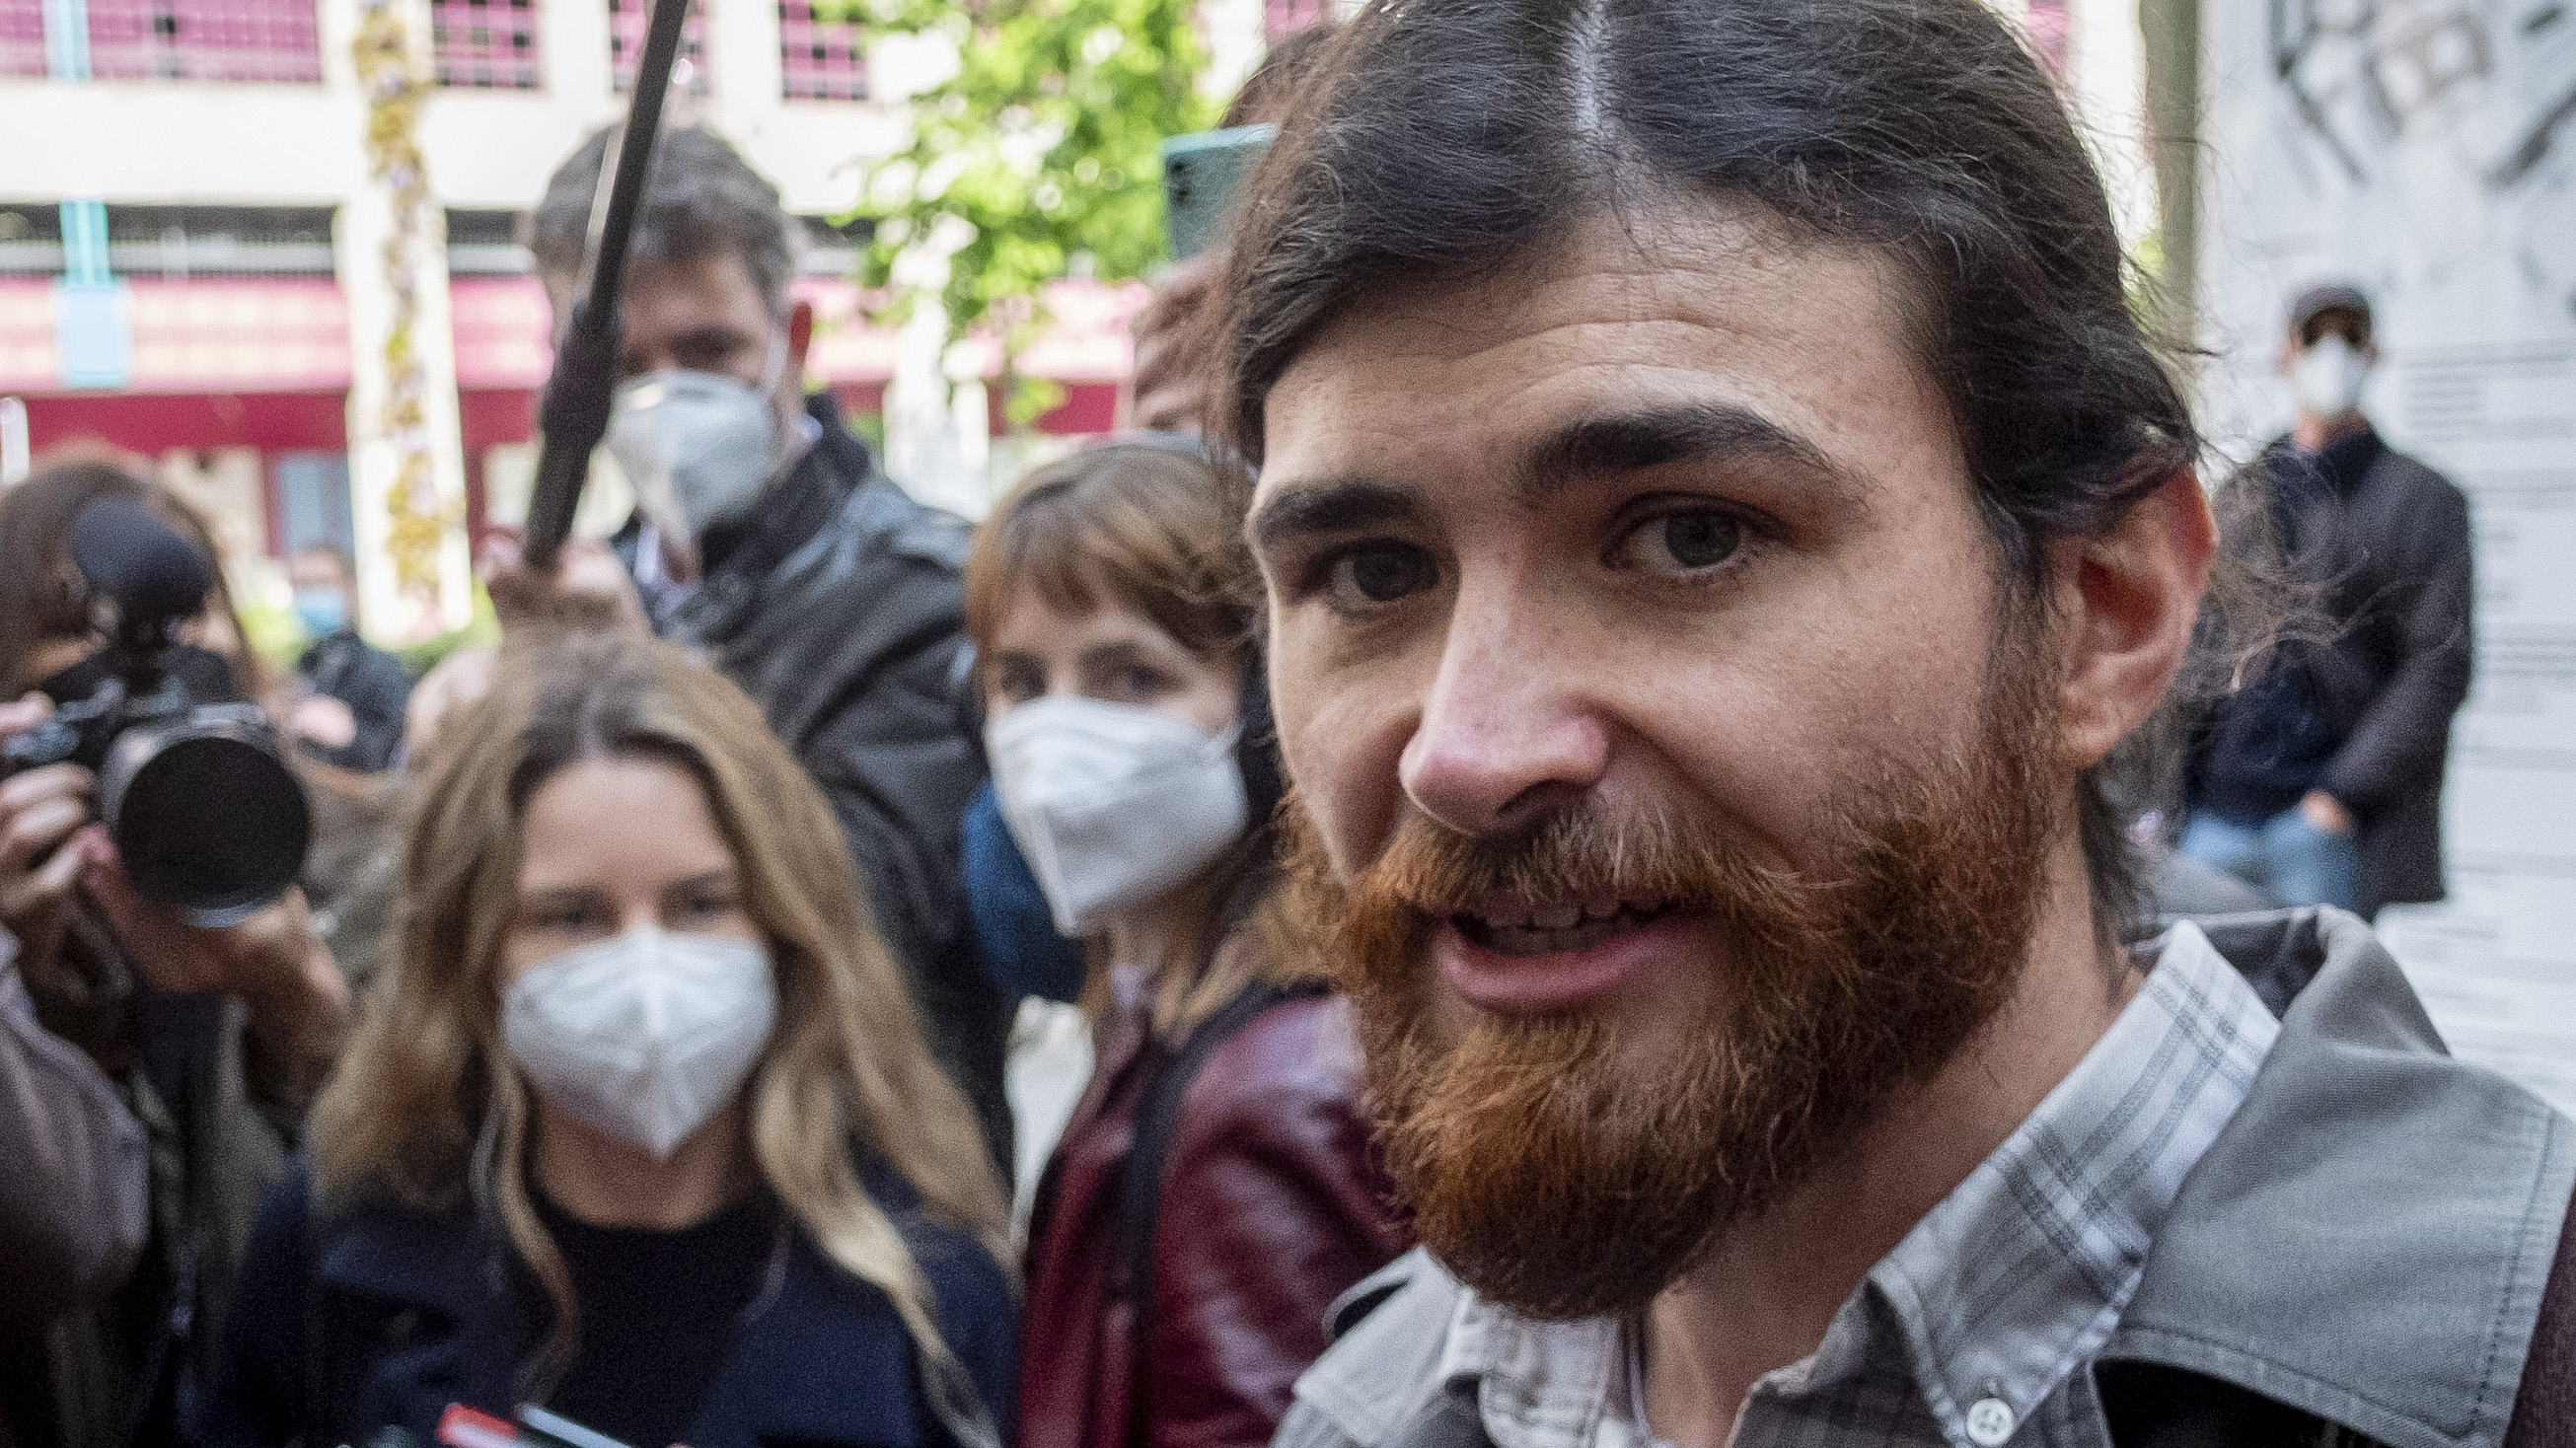 The defendant identified only as 1st Lt. Franco A. due to German privacy rules, walks to a court for the start of a trial on charges of preparing a serious act of violence endangering the state in Frankfurt, Germany.